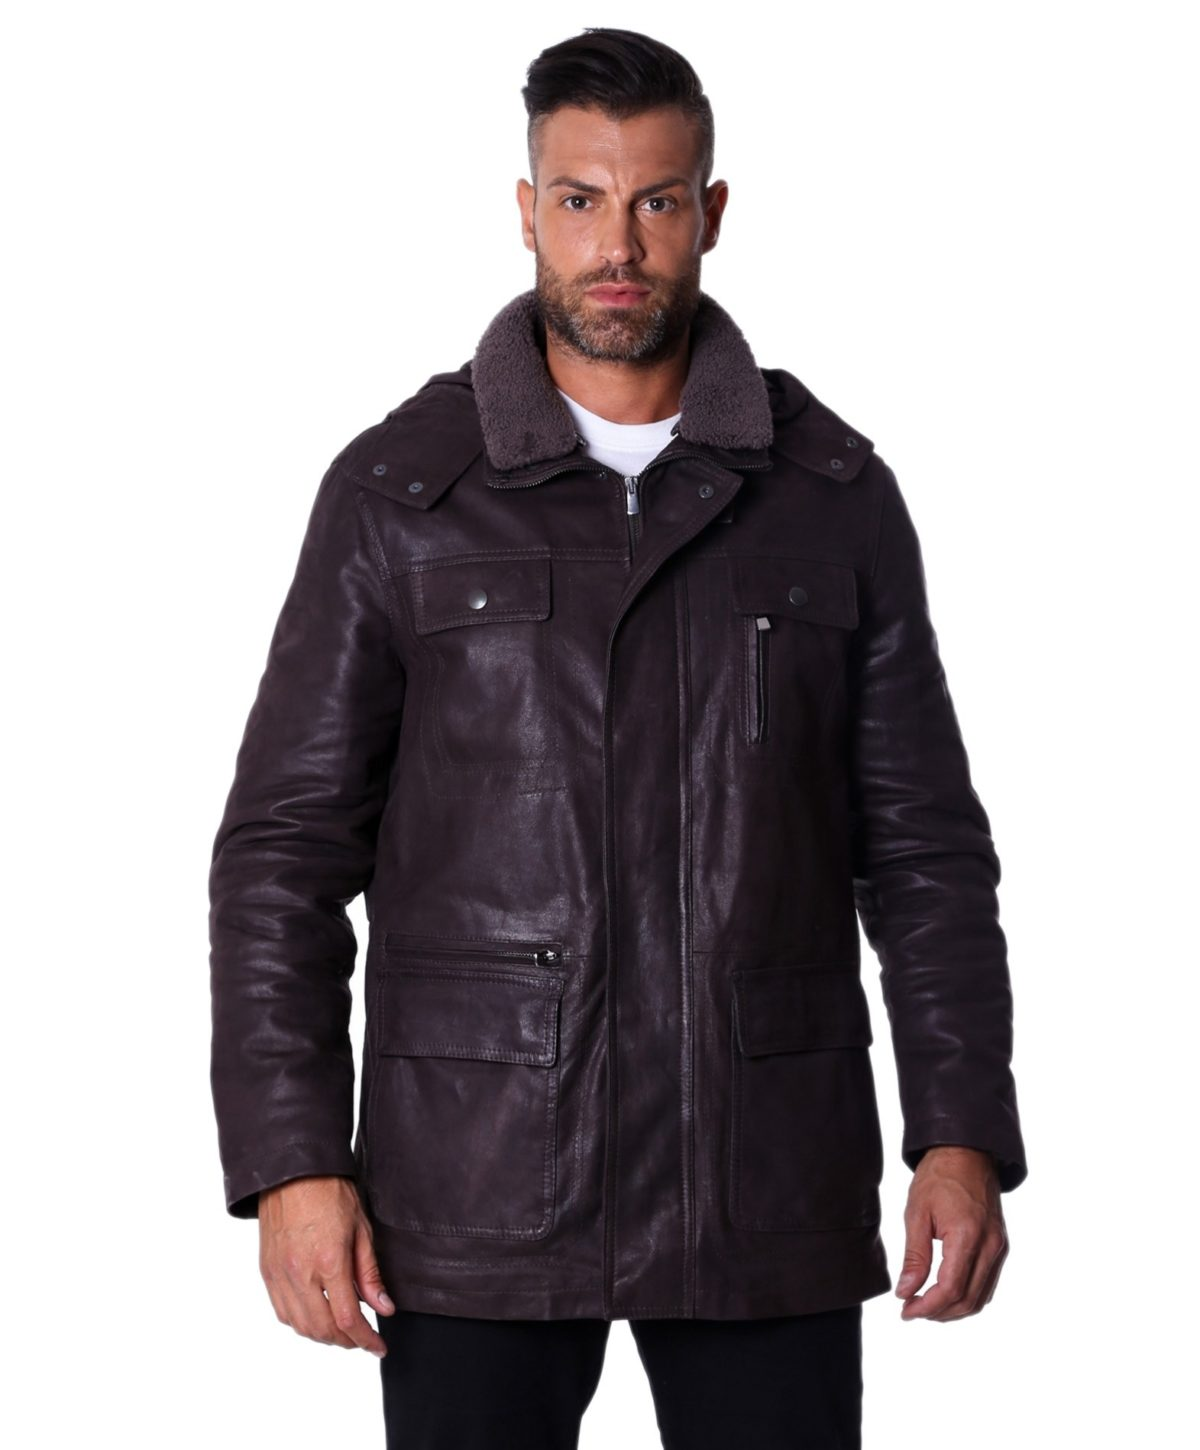 men-s-long-leather-coat-genuine-soft-leather-five-pockets-detachable-hood-dark-brown-color-vittorio (4)